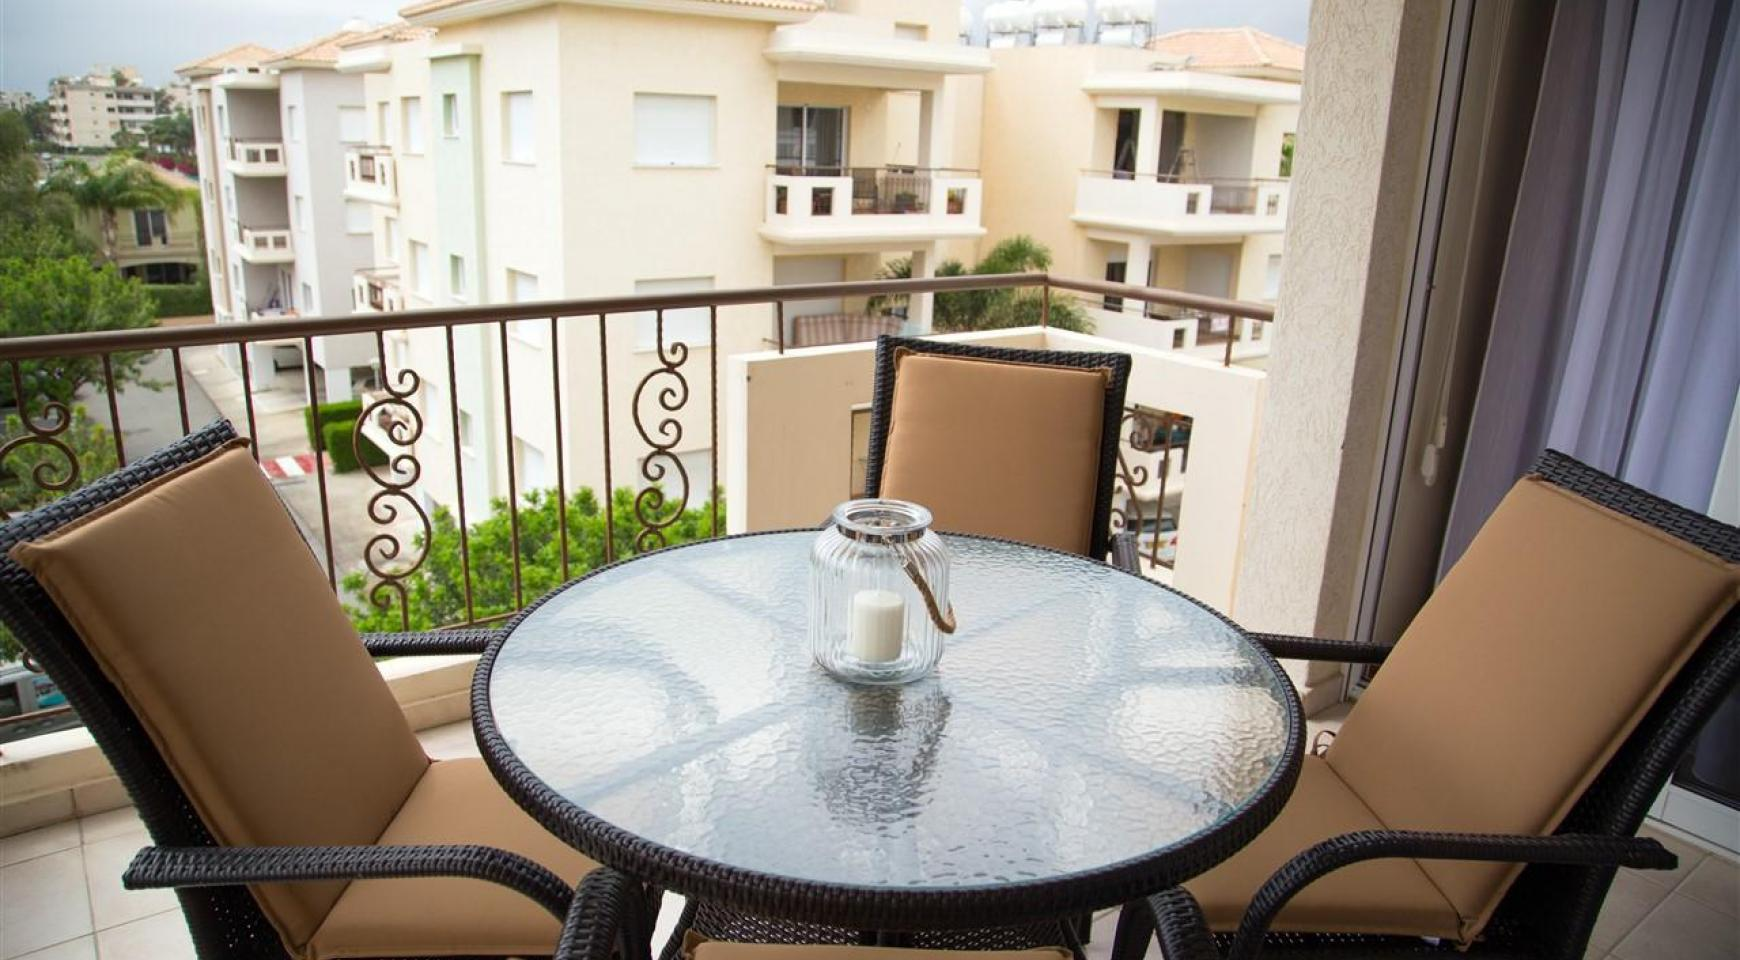 2 Bedroom Apartment Mesogios Iris 304 in the Complex near the Sea - 24